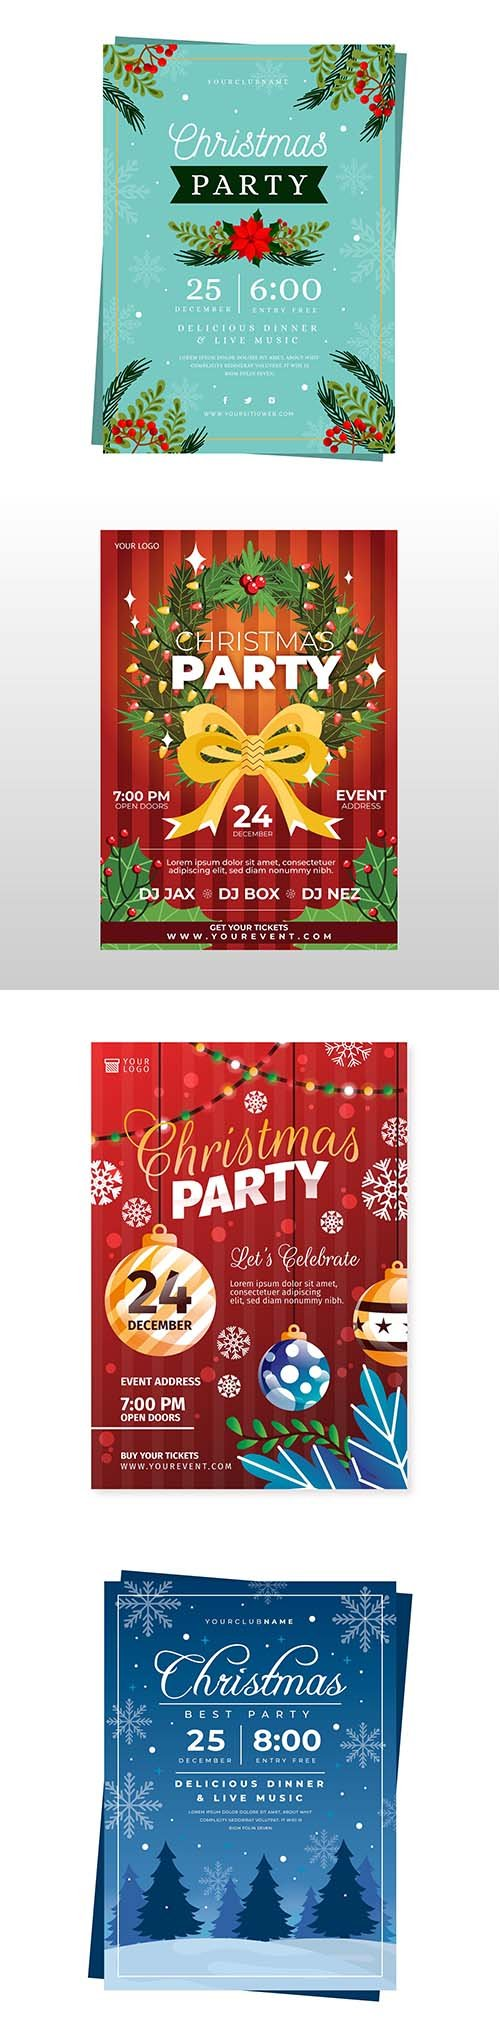 Flat design christmas party template poster